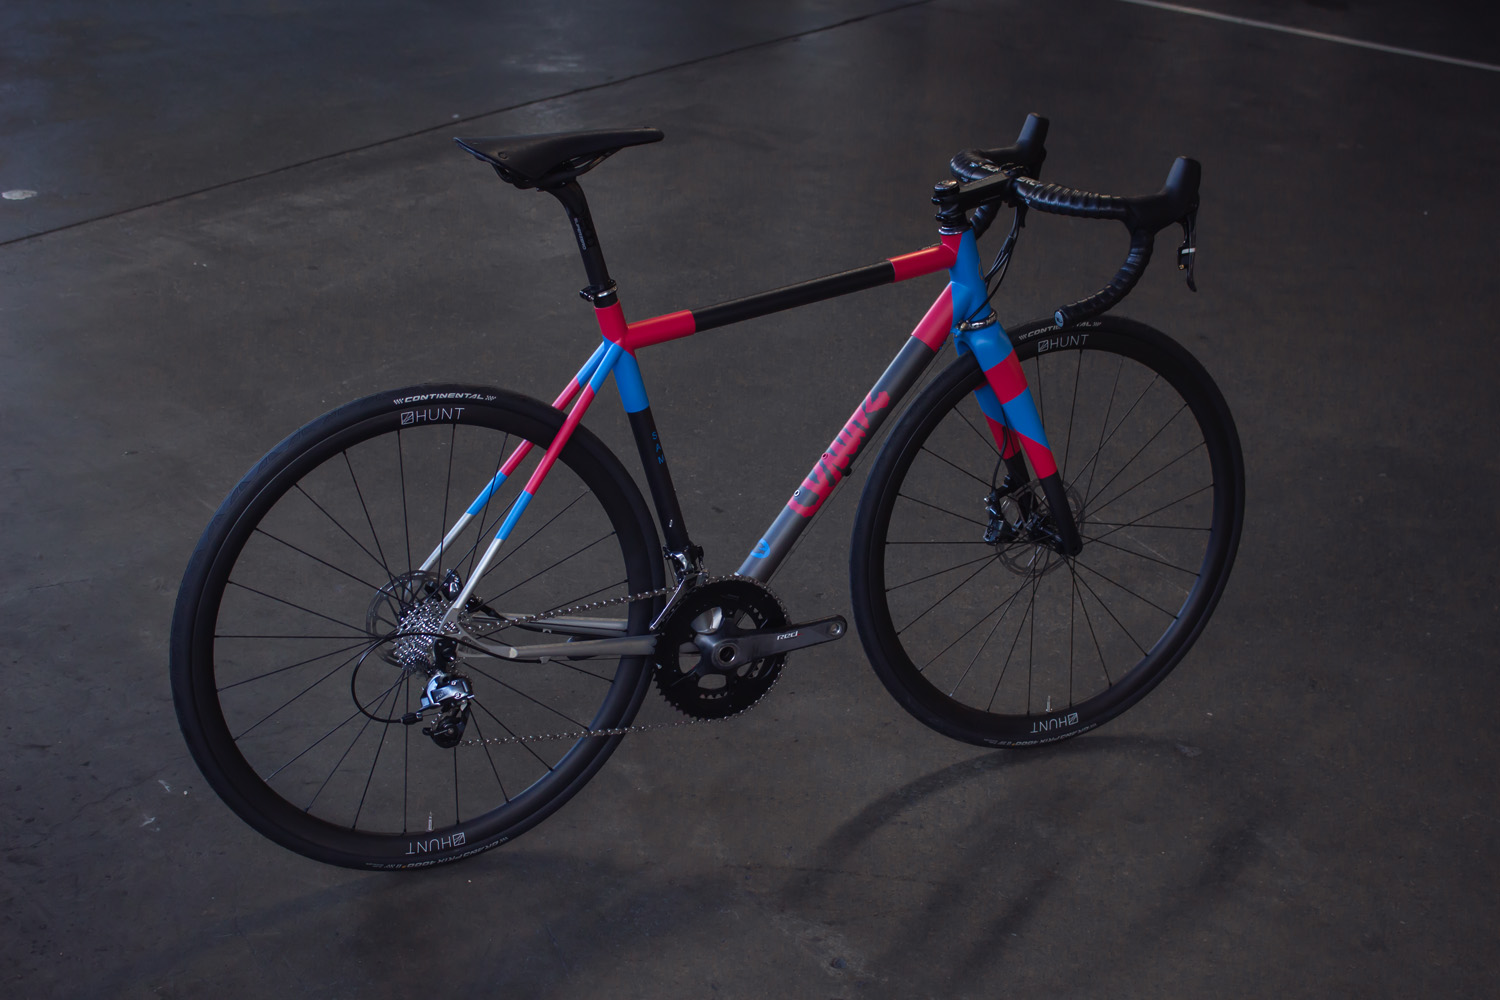 quirk_cycles_stainless_carbon_climber_road_JPEG_0012.jpg